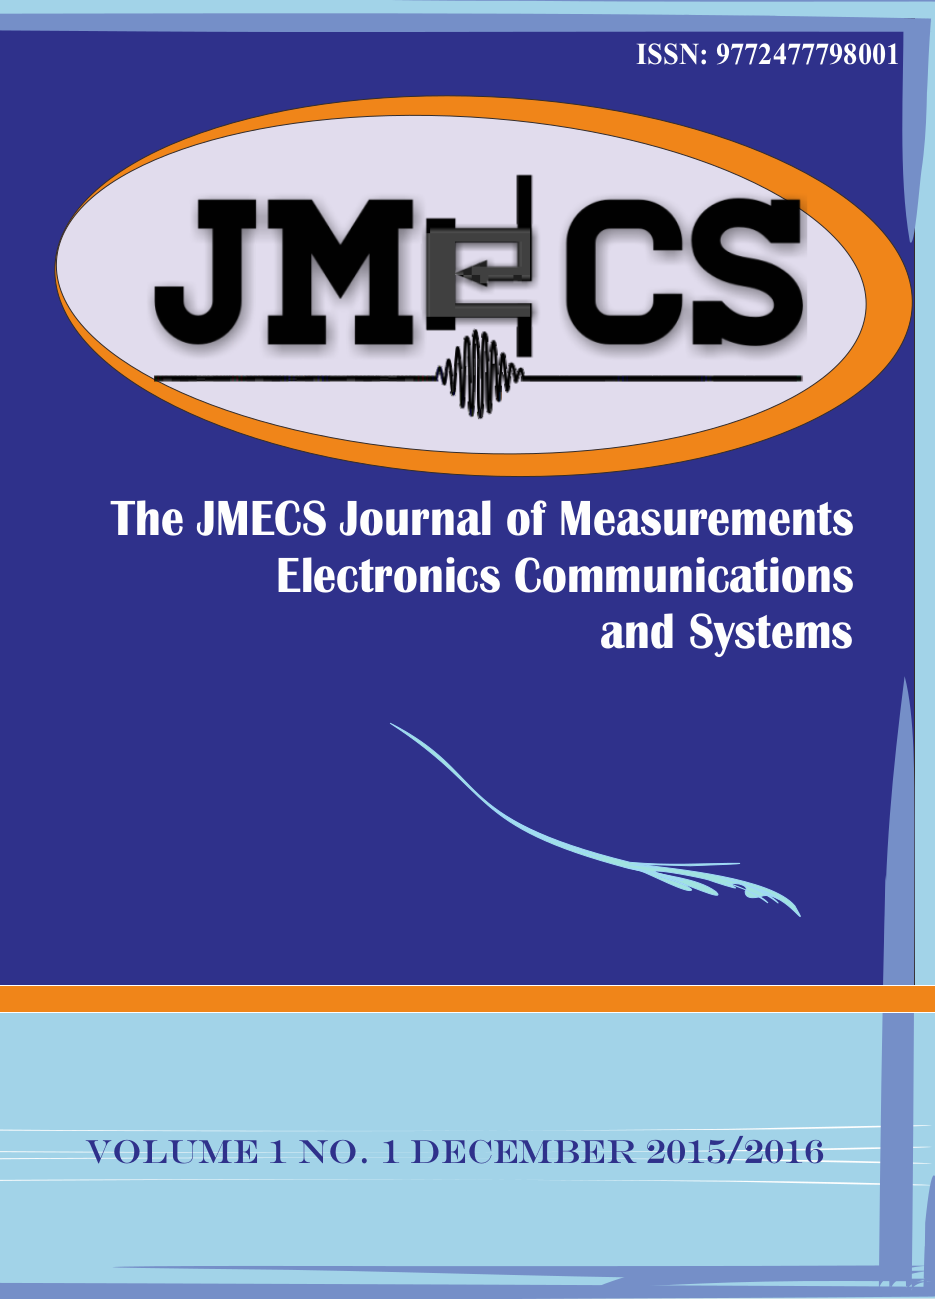 JMECS Vol.1 No.1 cover